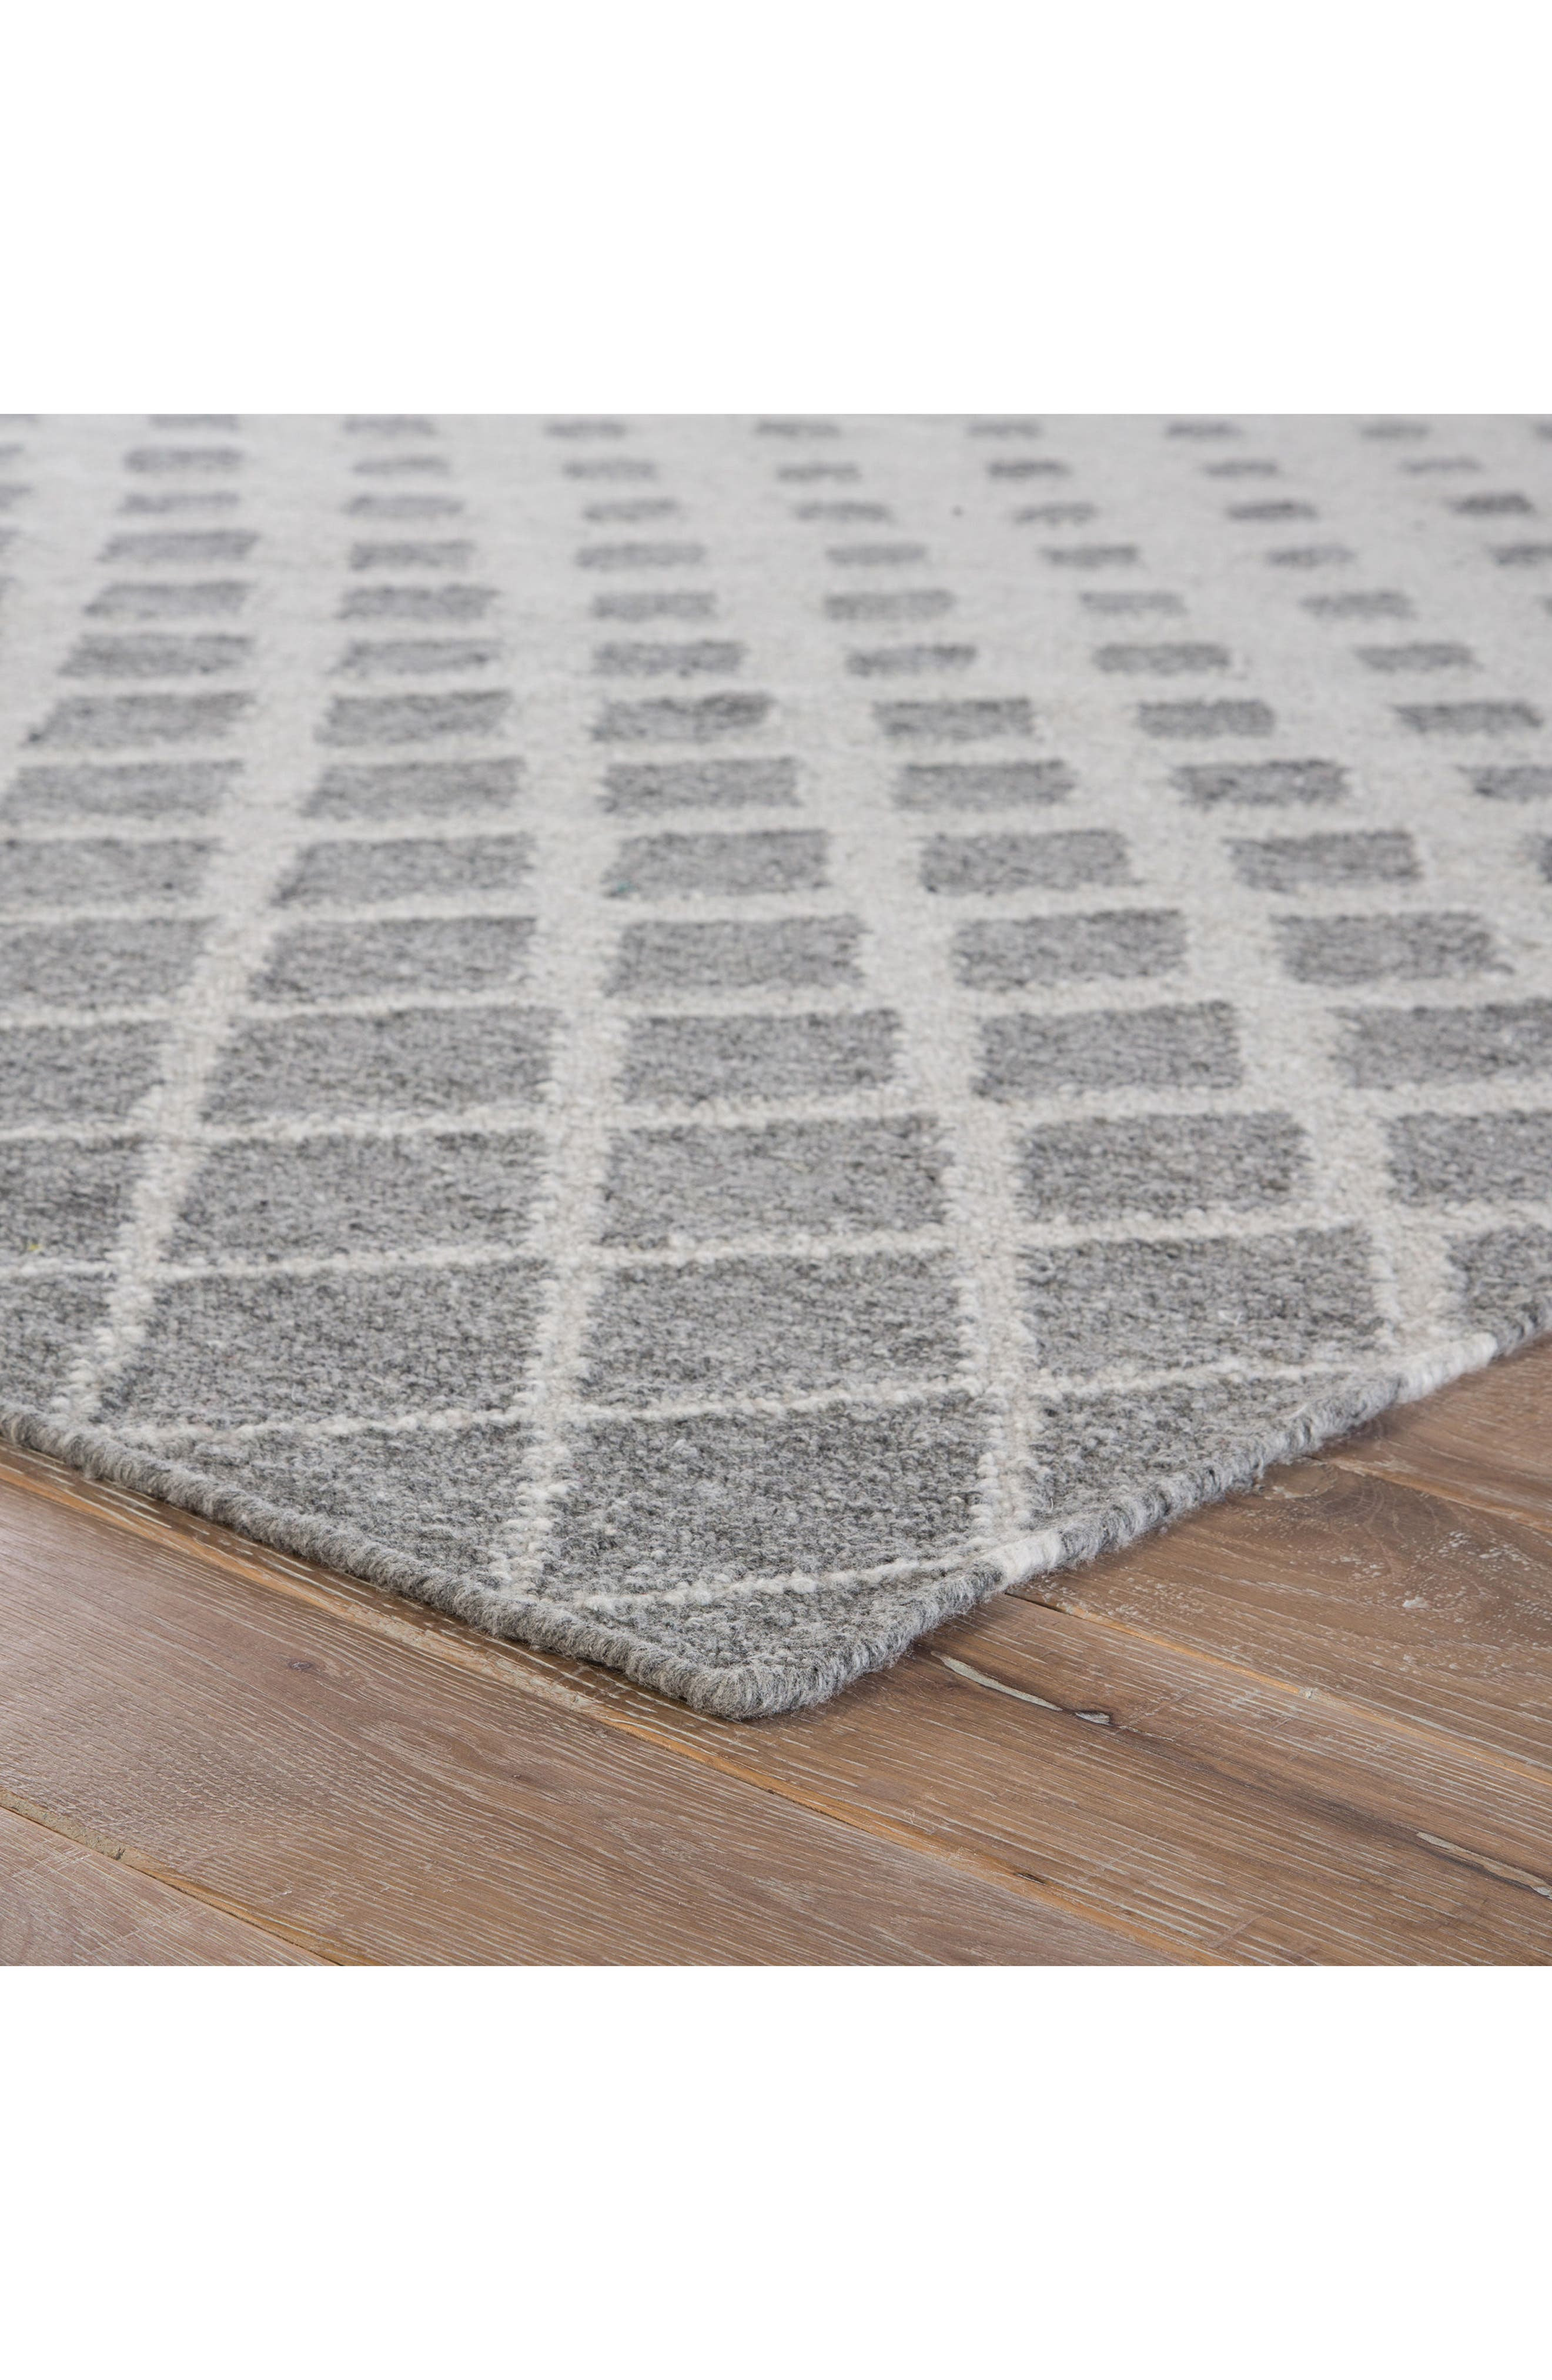 Pyramid Blocks Rug,                             Alternate thumbnail 3, color,                             099